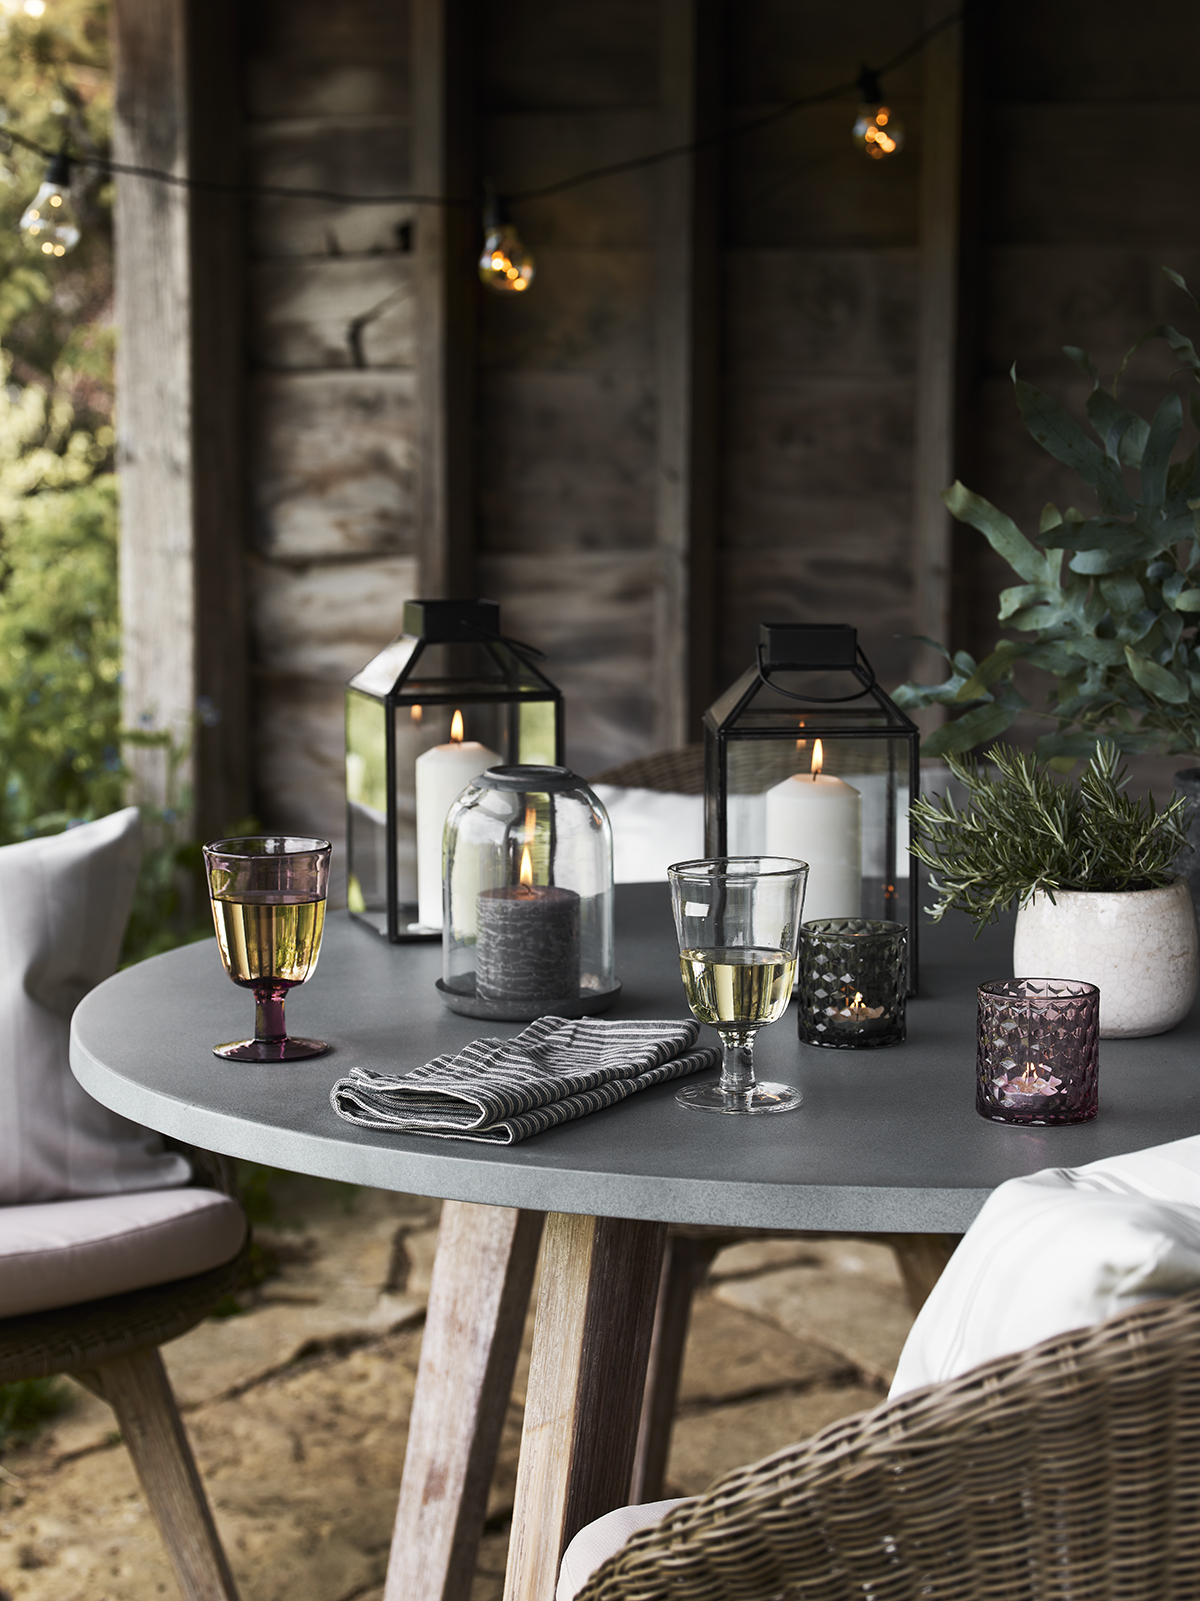 A simple, more informal tablescape works for outdoor gatherings